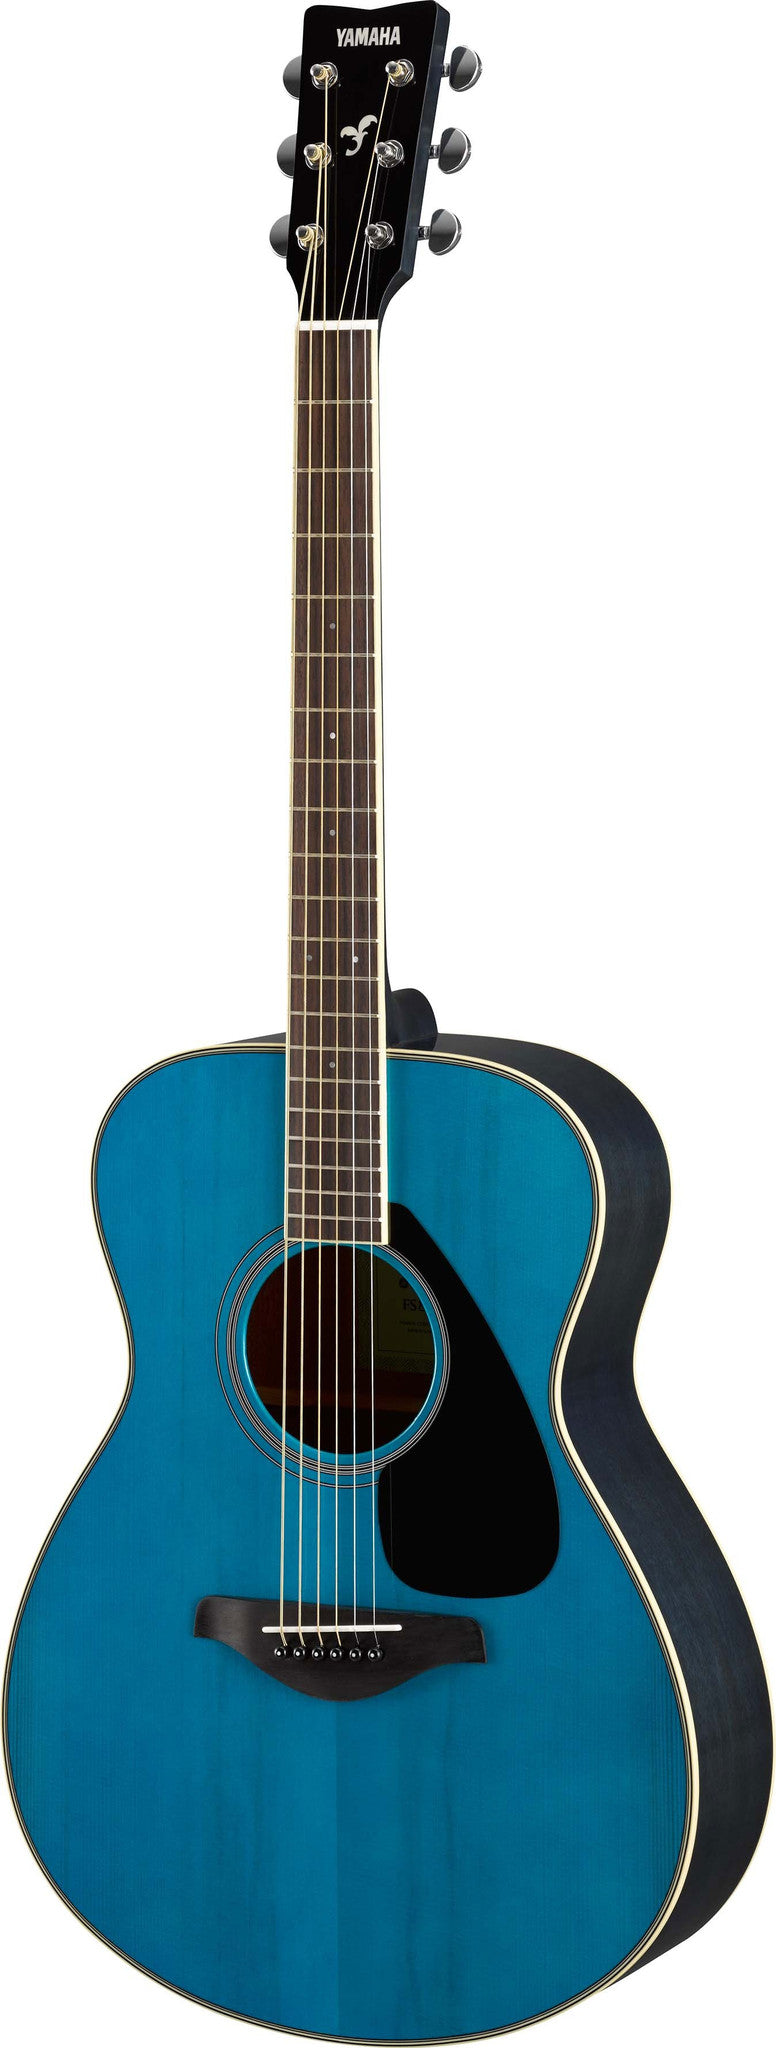 Yamaha FS820TQ Small Body Acoustic Guitar